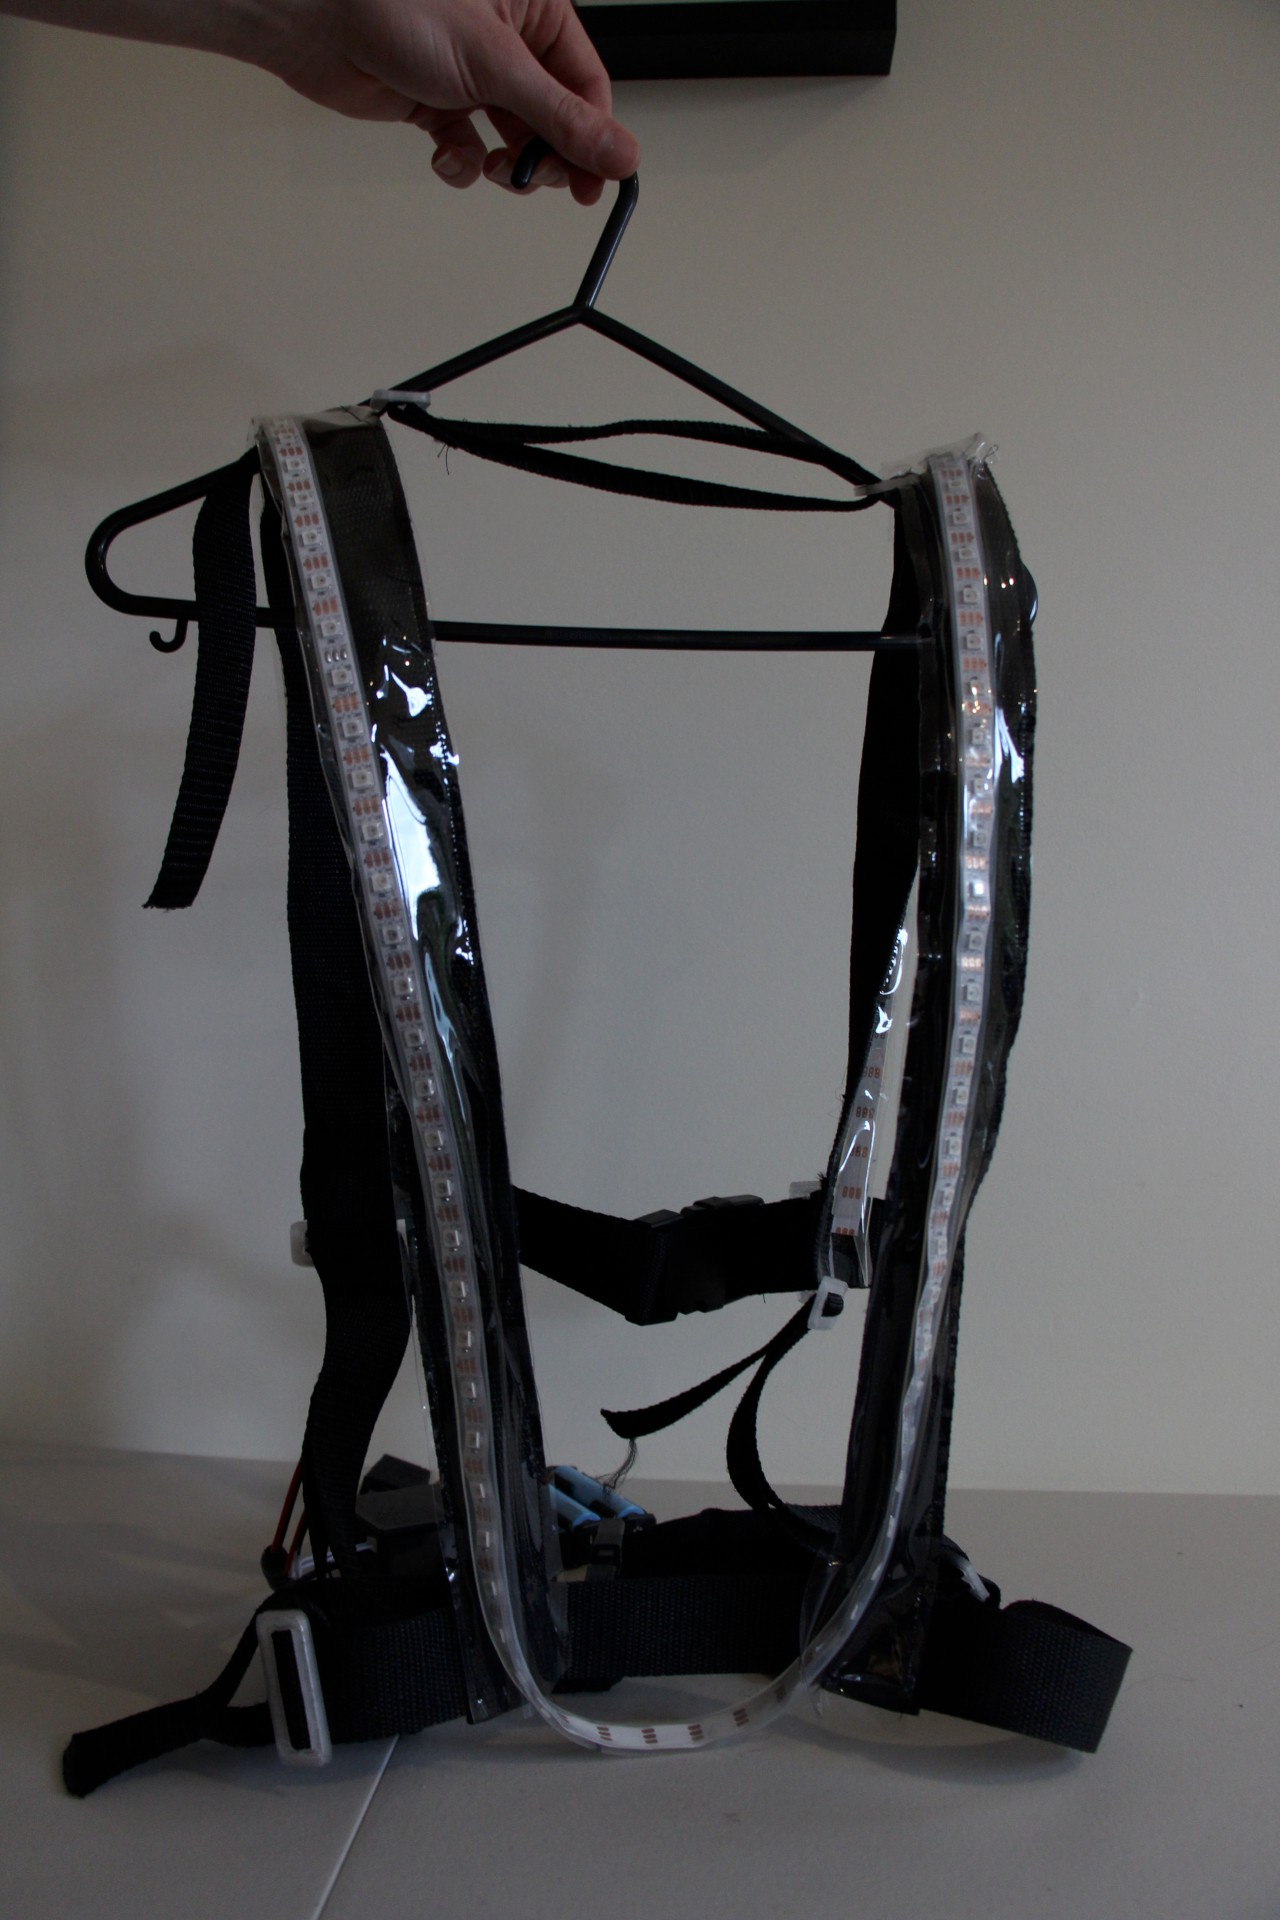 Harness from the back - you can see all the adjustments you can make; length and width for every part.